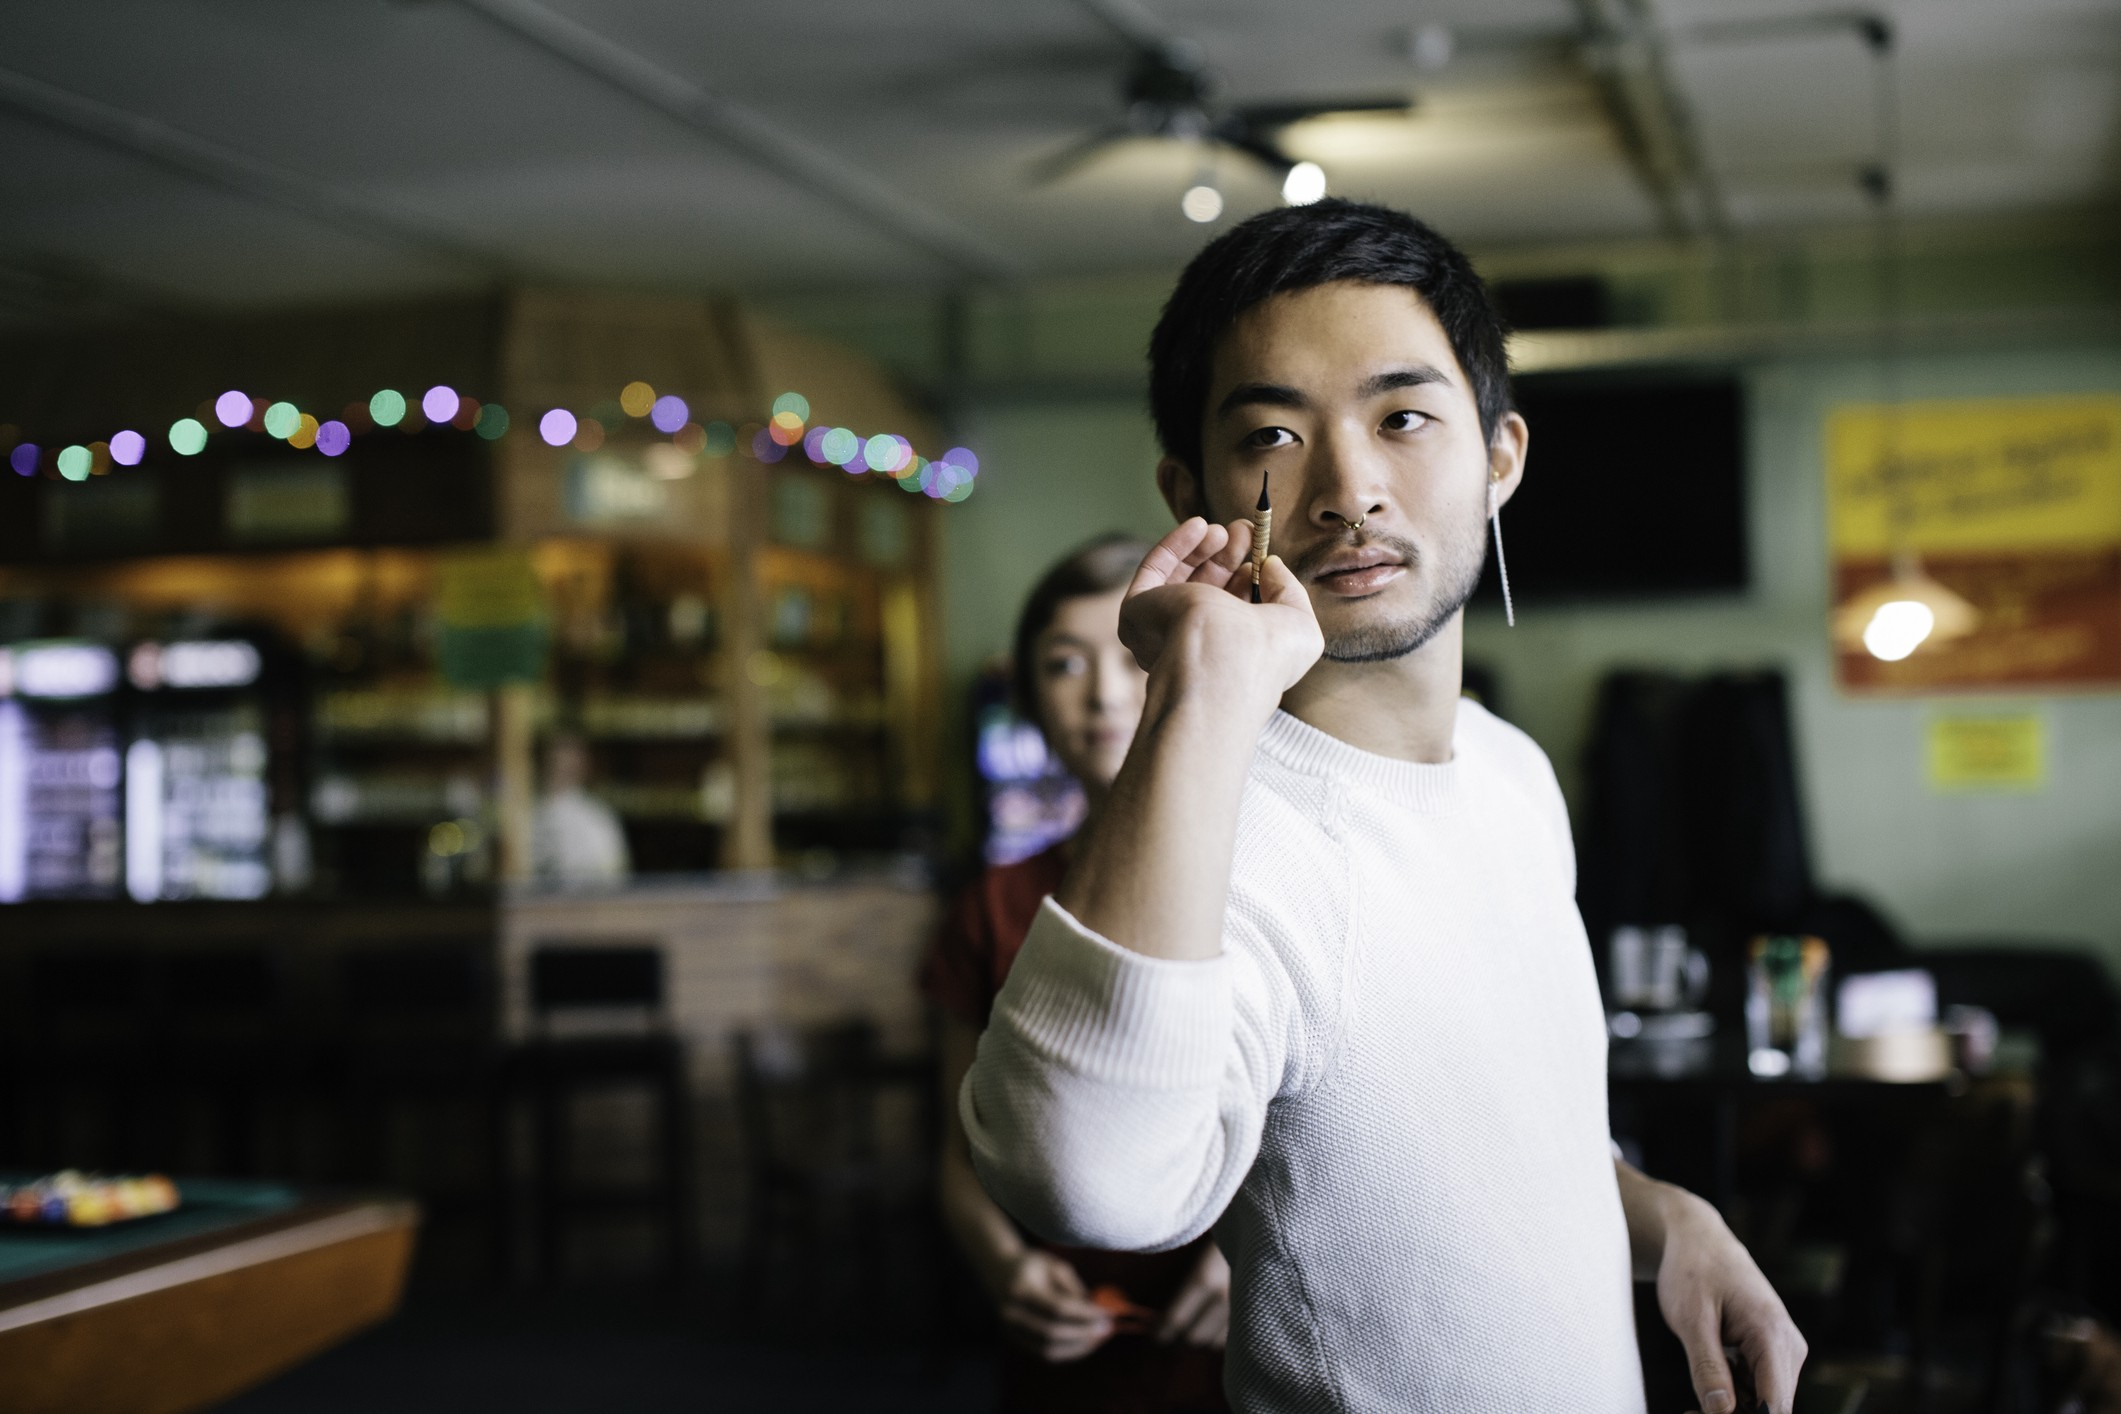 A man prepares to throw a dart with a focused expression.